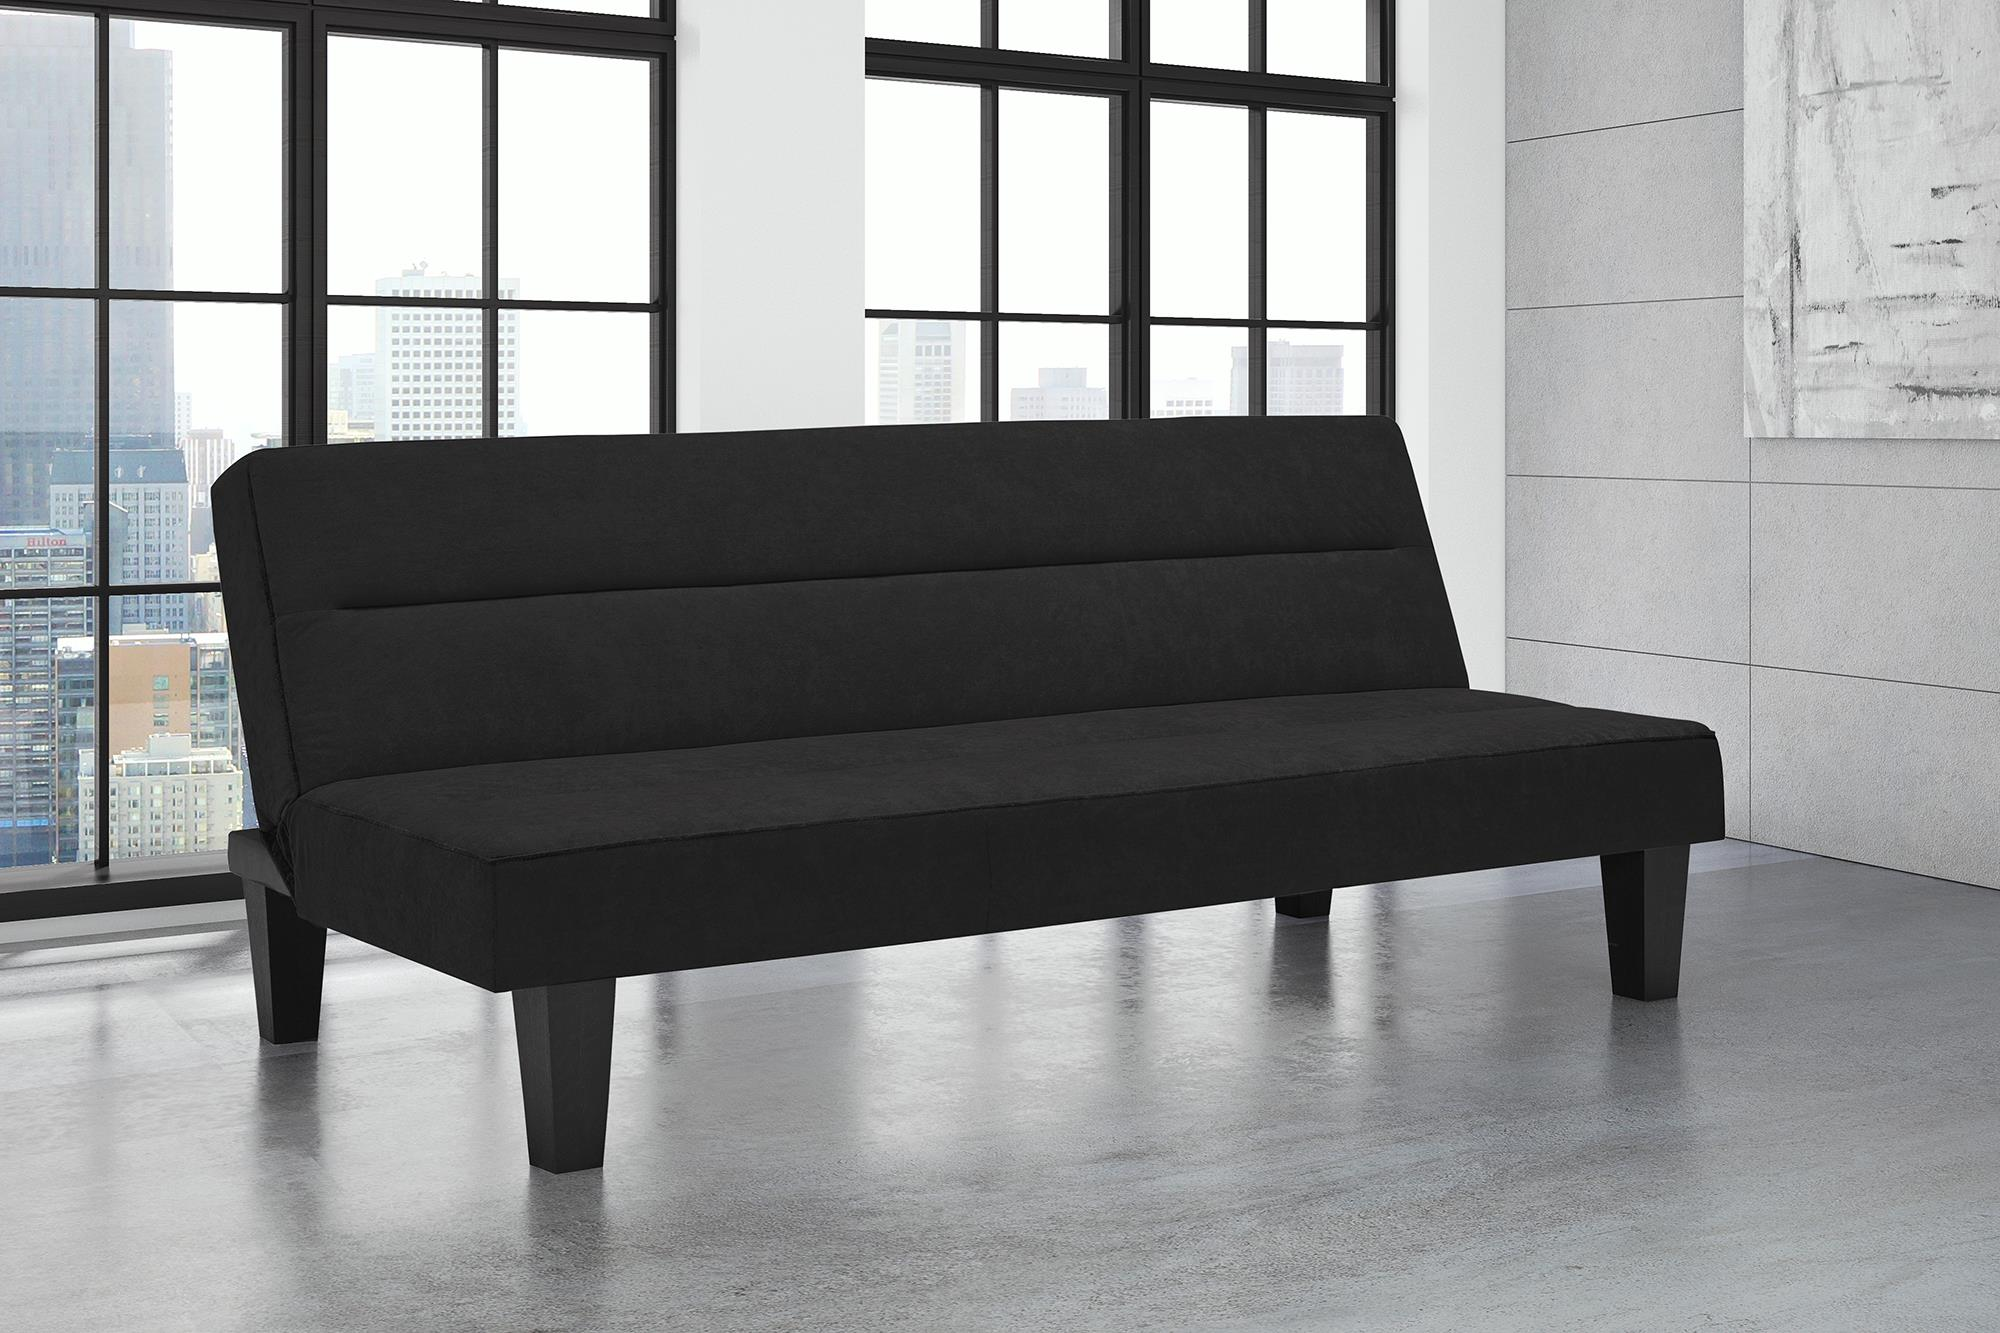 Image Is Loading Kebo-Futon-Sofa-Bed-Multiple-Colors